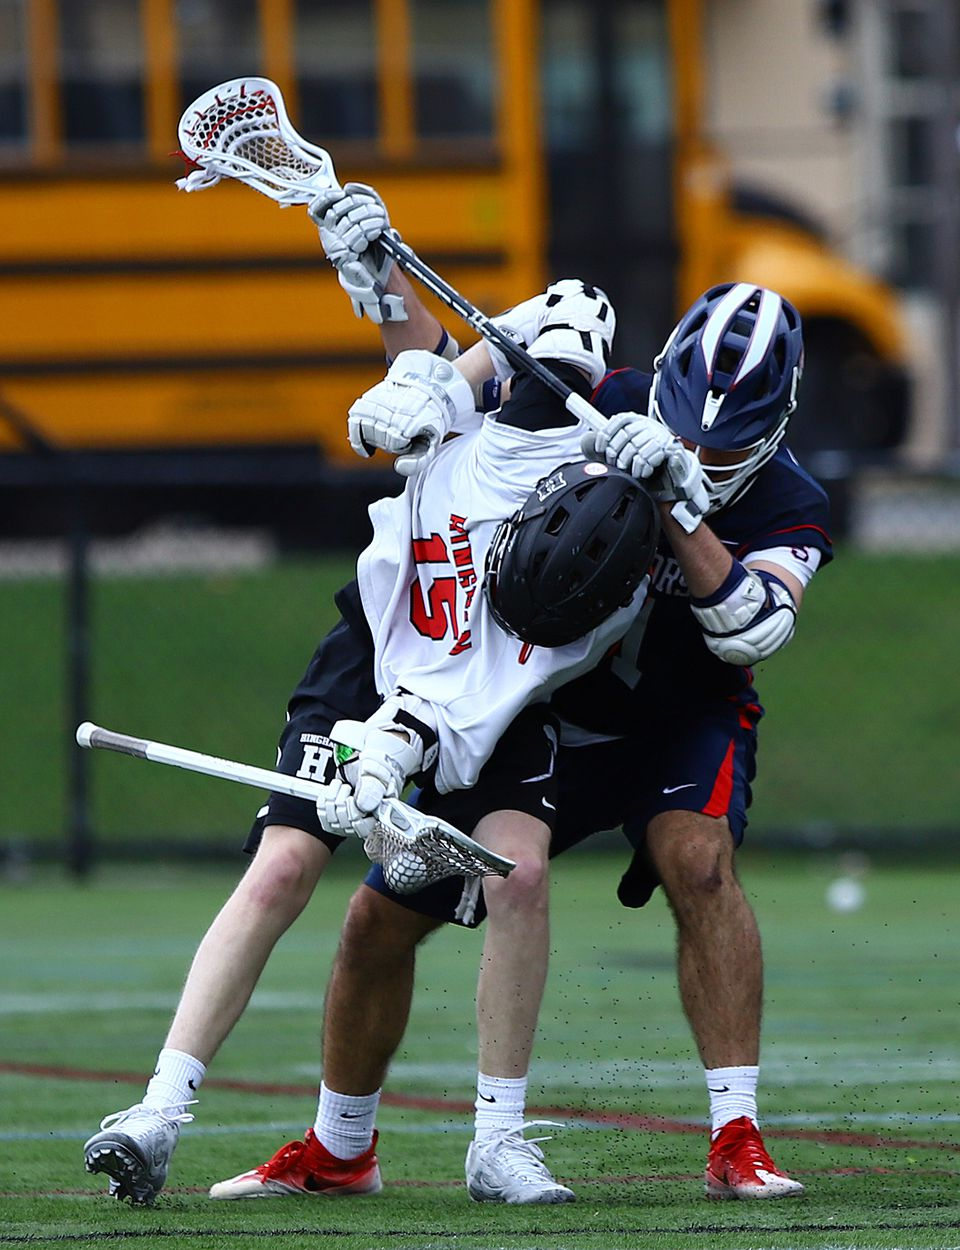 Hingham's Pat Doyle gets tangled with Lincoln-Sudbury's Braden O'Connell during Saturday's final in the Coaches Challenge Cup at Winchester High.